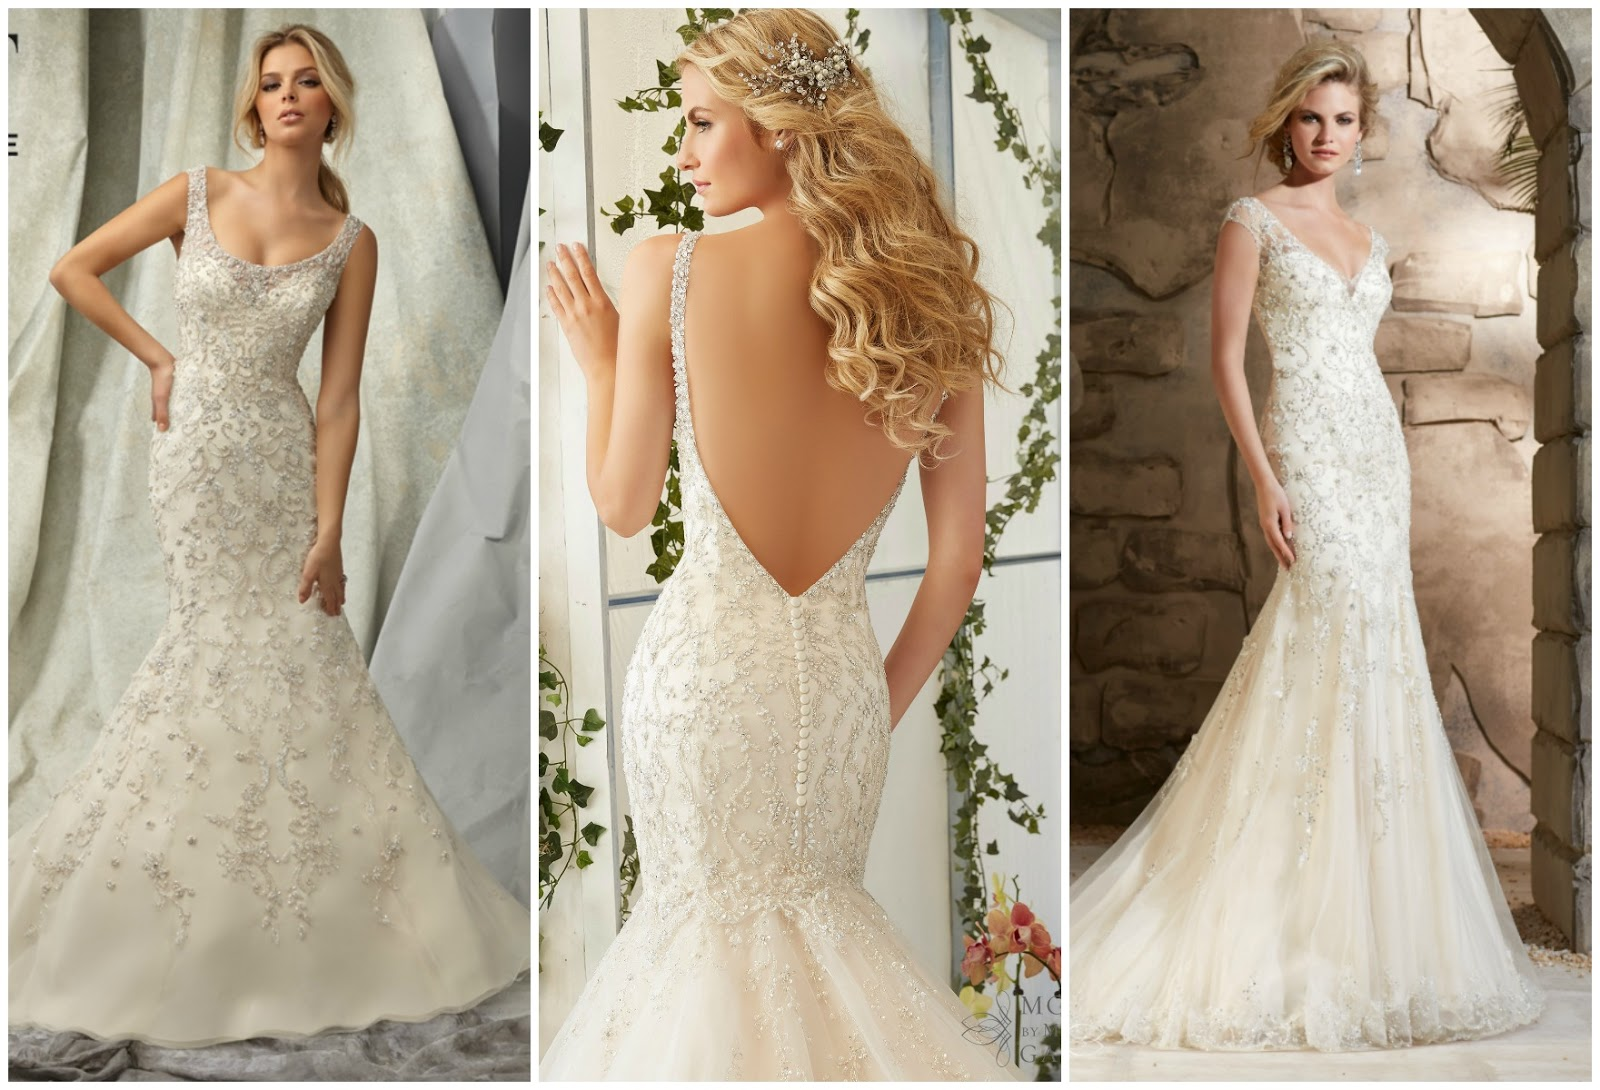 Brides of America Online Store: Brides Love Our Wedding Dresses ...